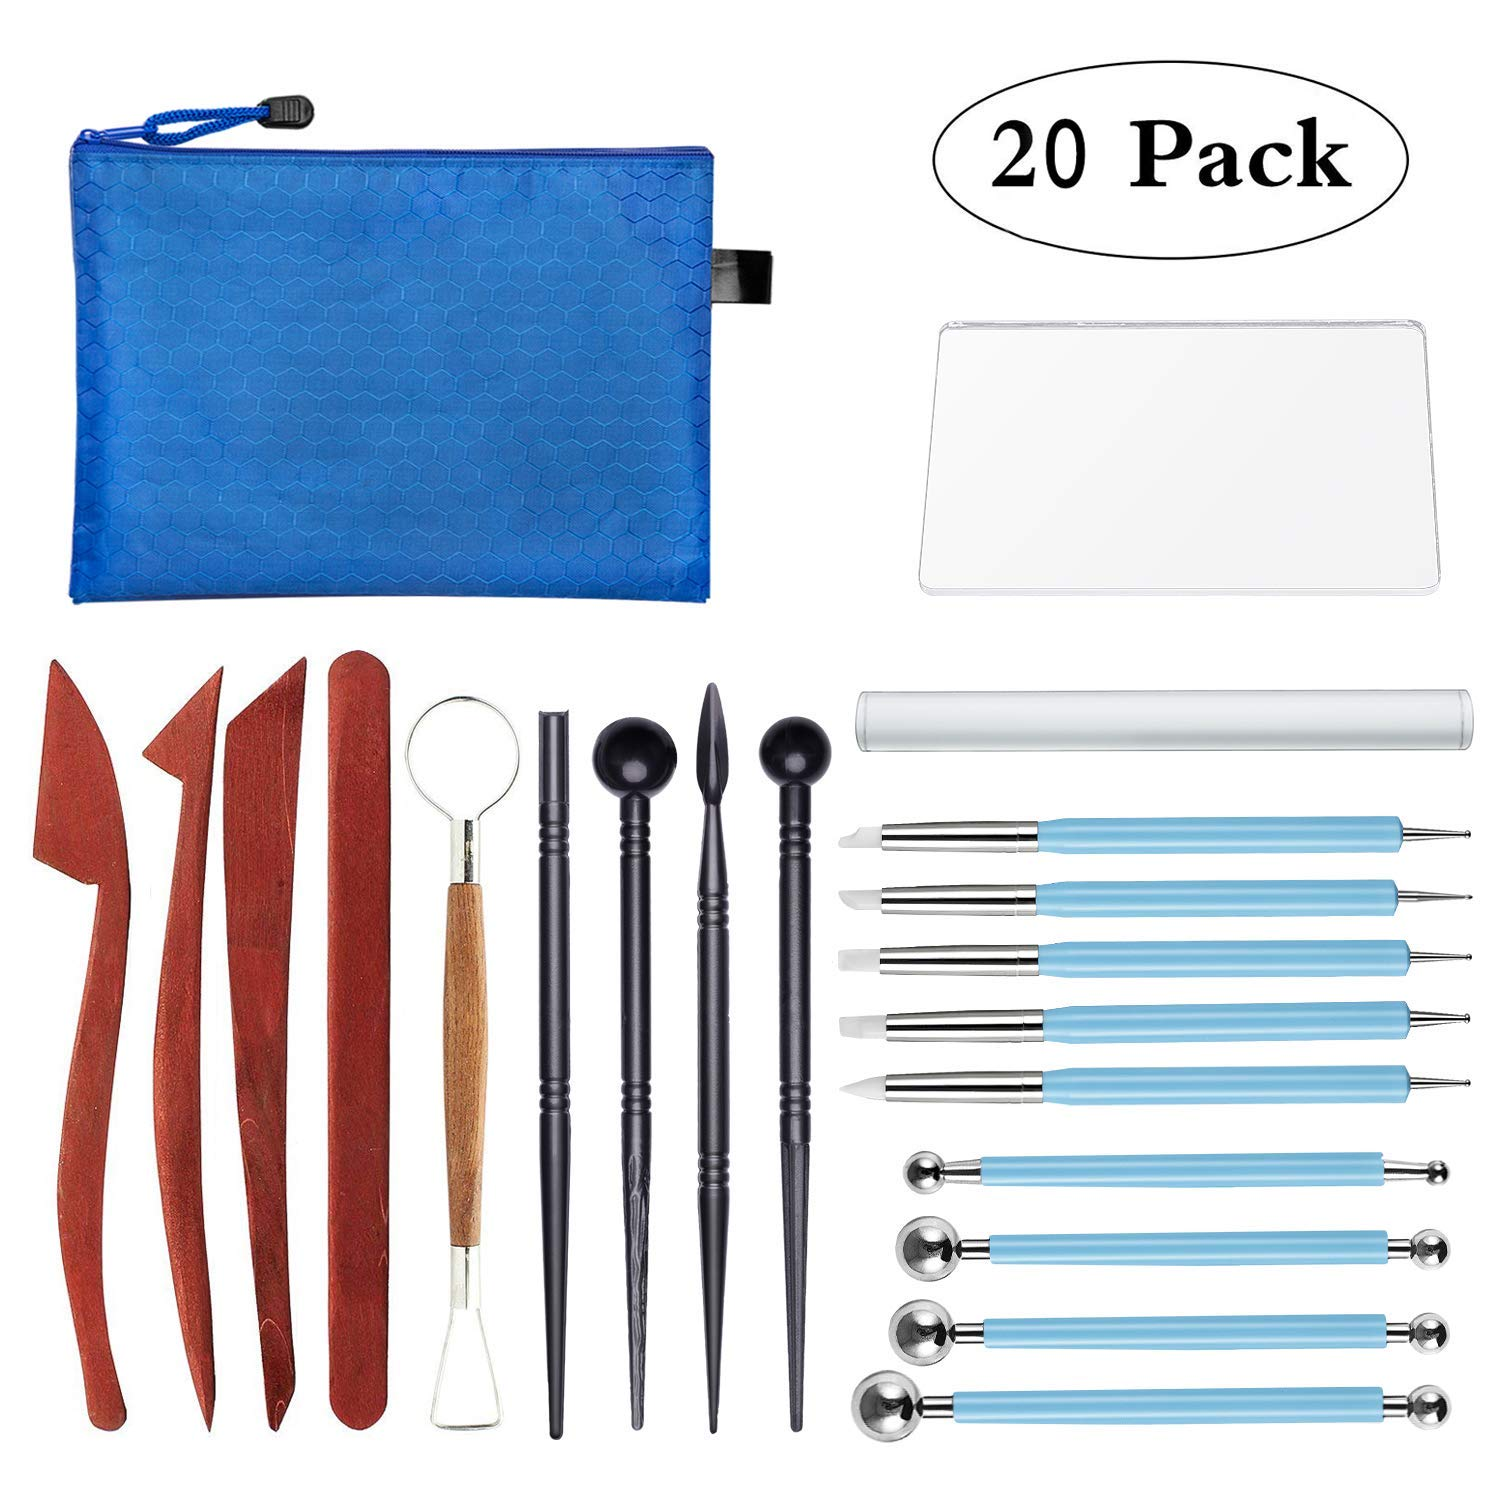 Polymer Clay Tools,23 pcs Modeling Clay Sculpting Tools Kits for Pottery Sculpture, Include Wooden Dotting Tools,Rubber Tip Pens,Ball Stylus Tool,Modeling Tools Pottery Tools,Rosewood Ceramics Tool vorey